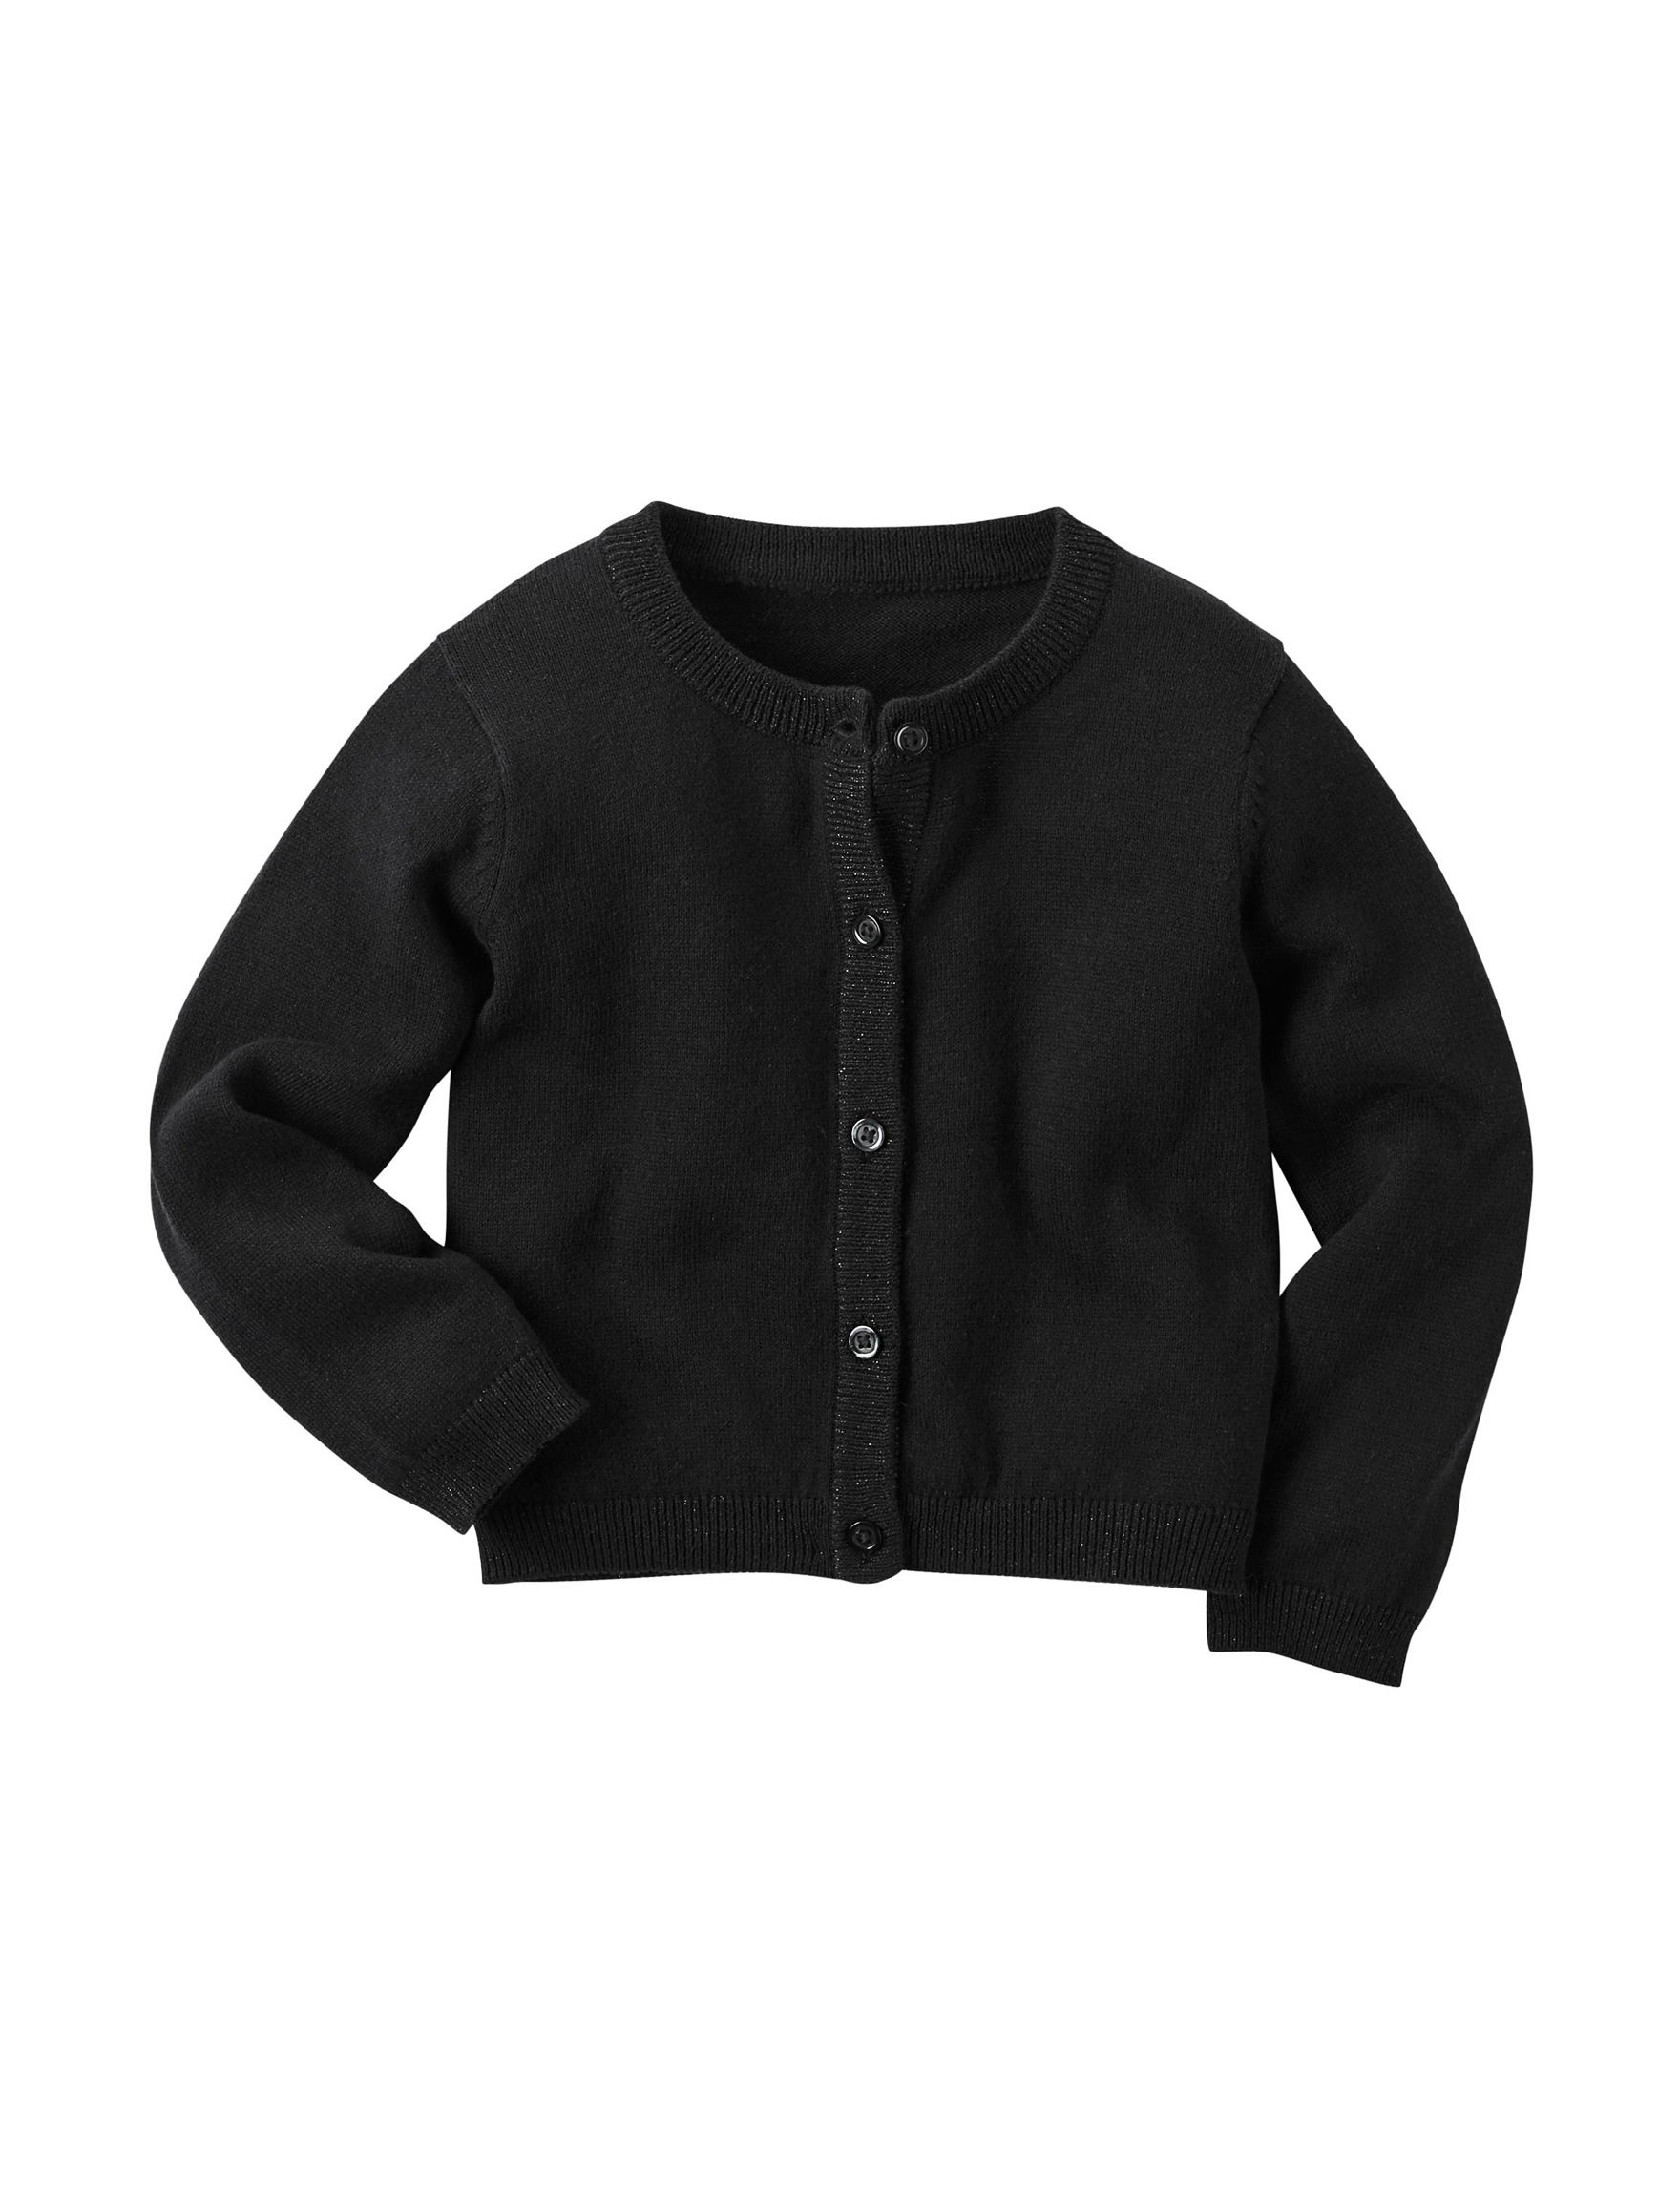 Carter's Black Sweaters